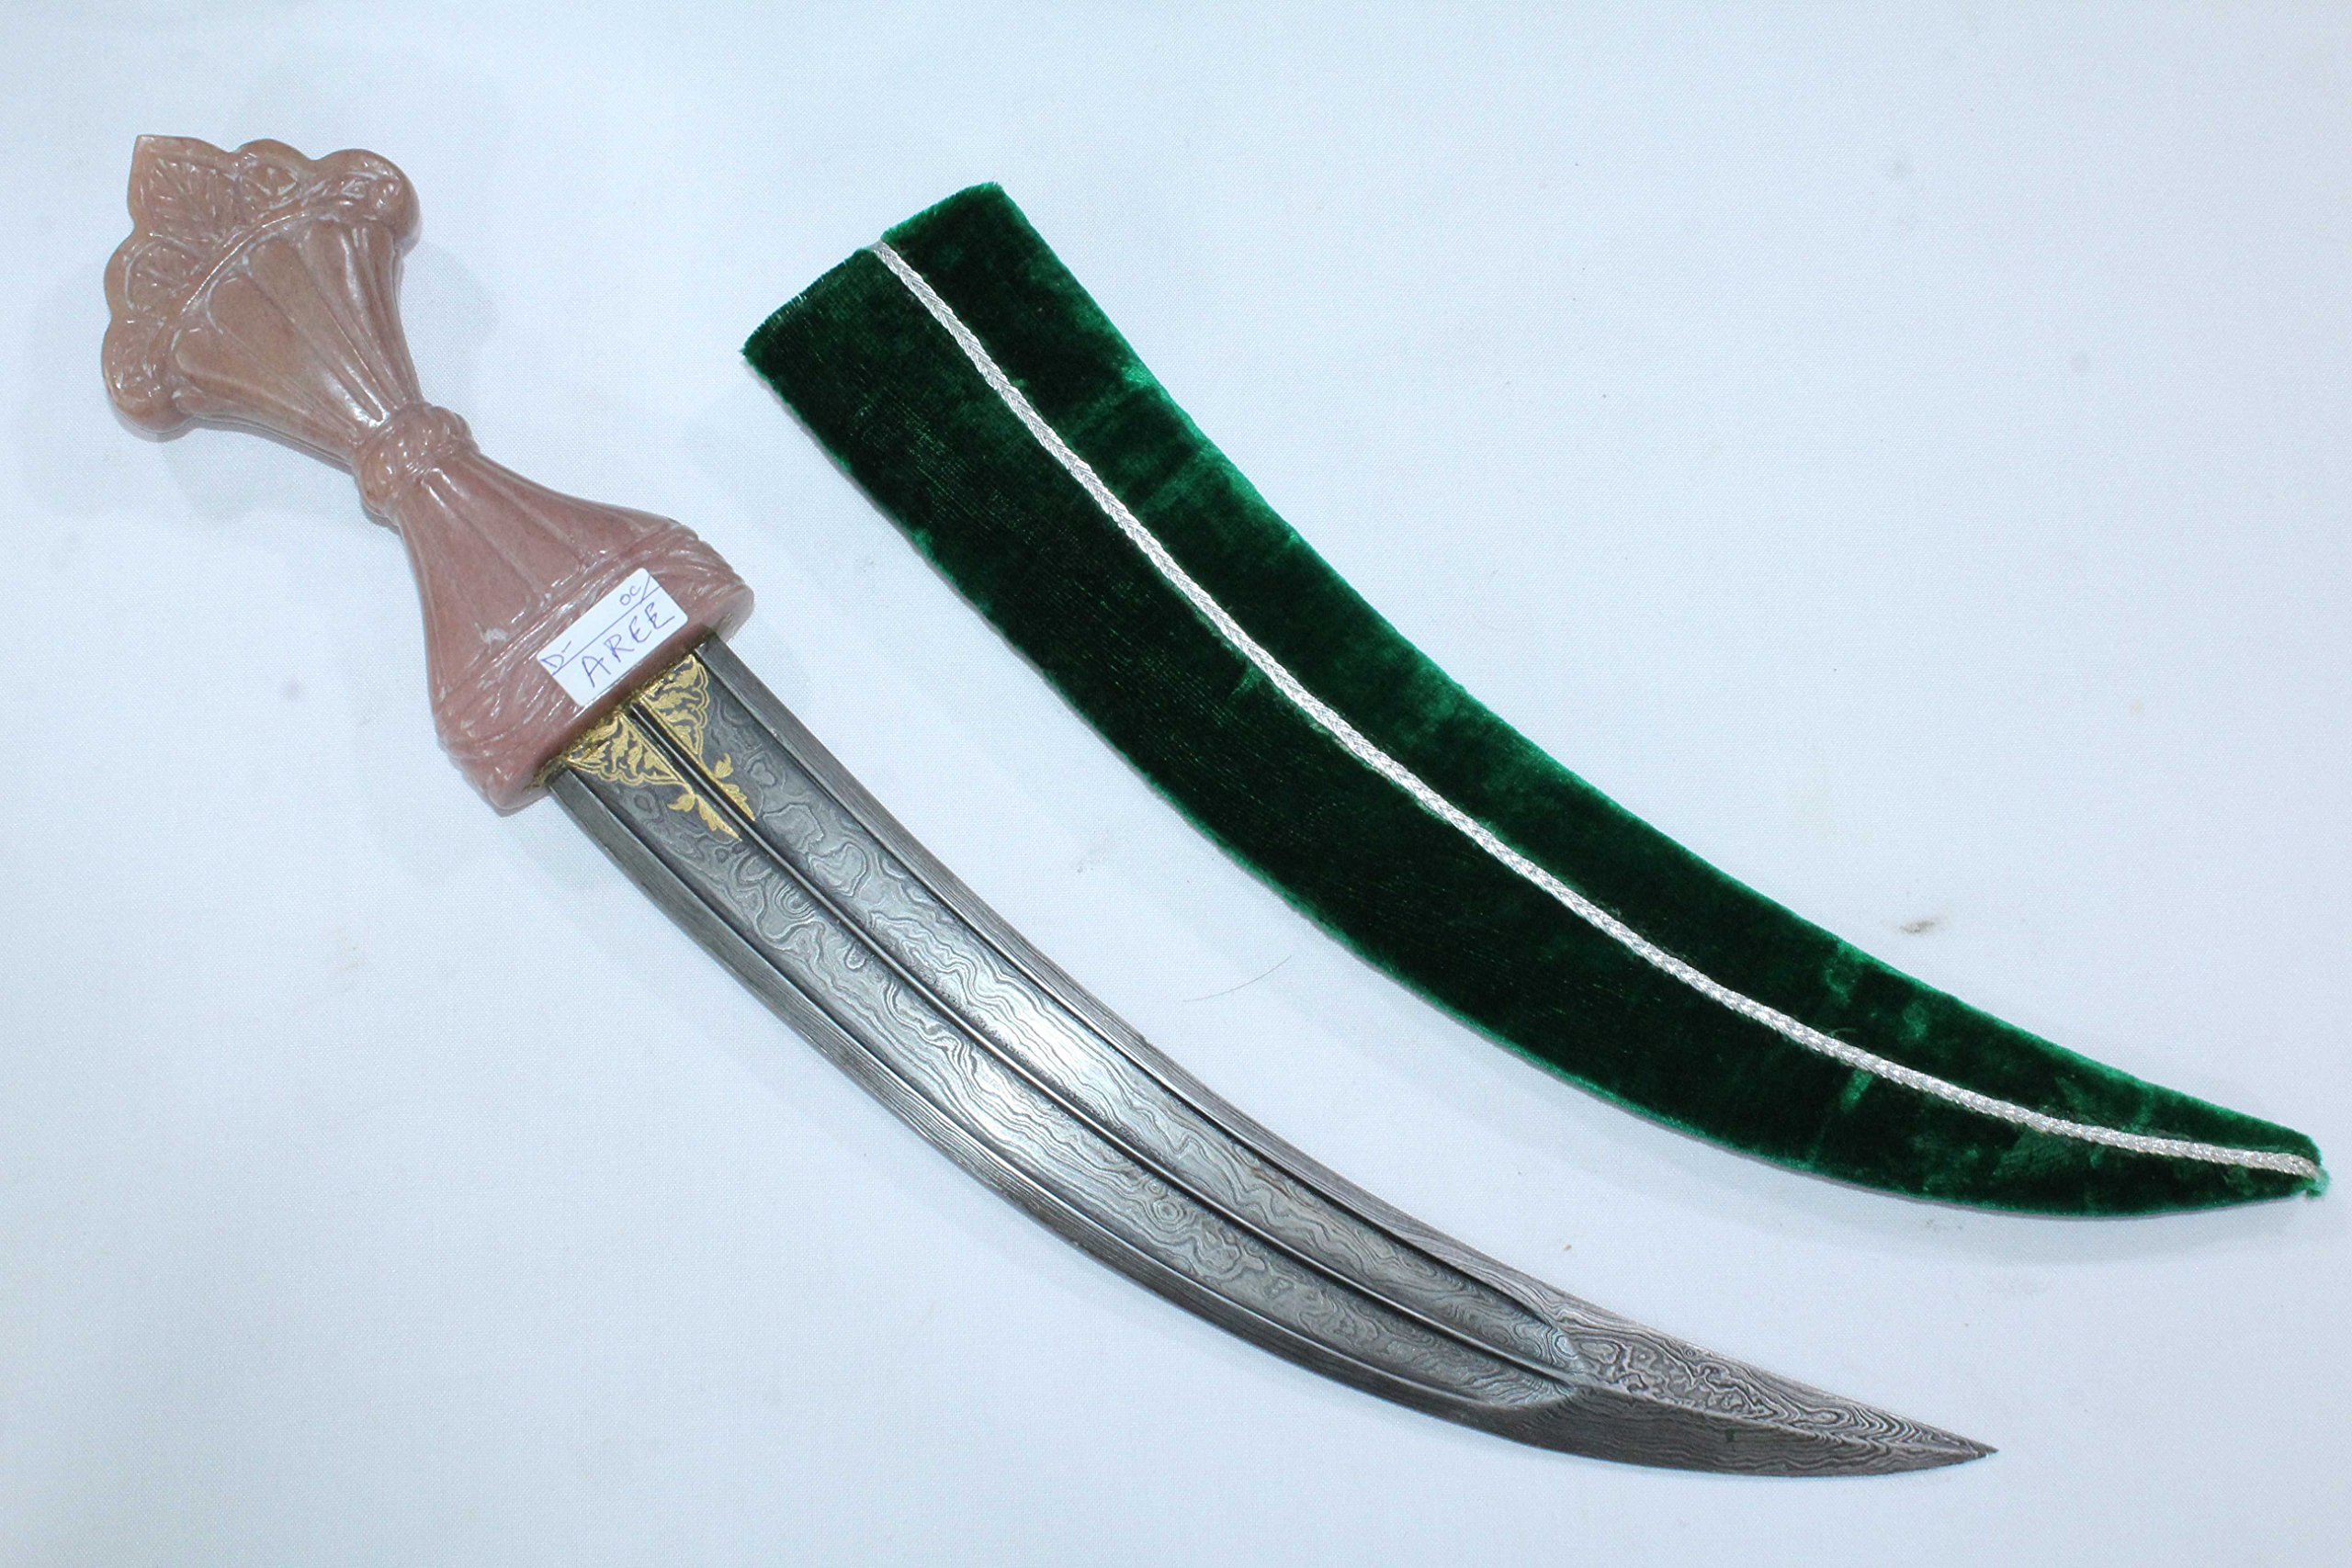 Rajasthan Gems pink Jade natural stone Handle Dagger knife Gold work damascus steel blade 18.0' by Rajasthan Gems